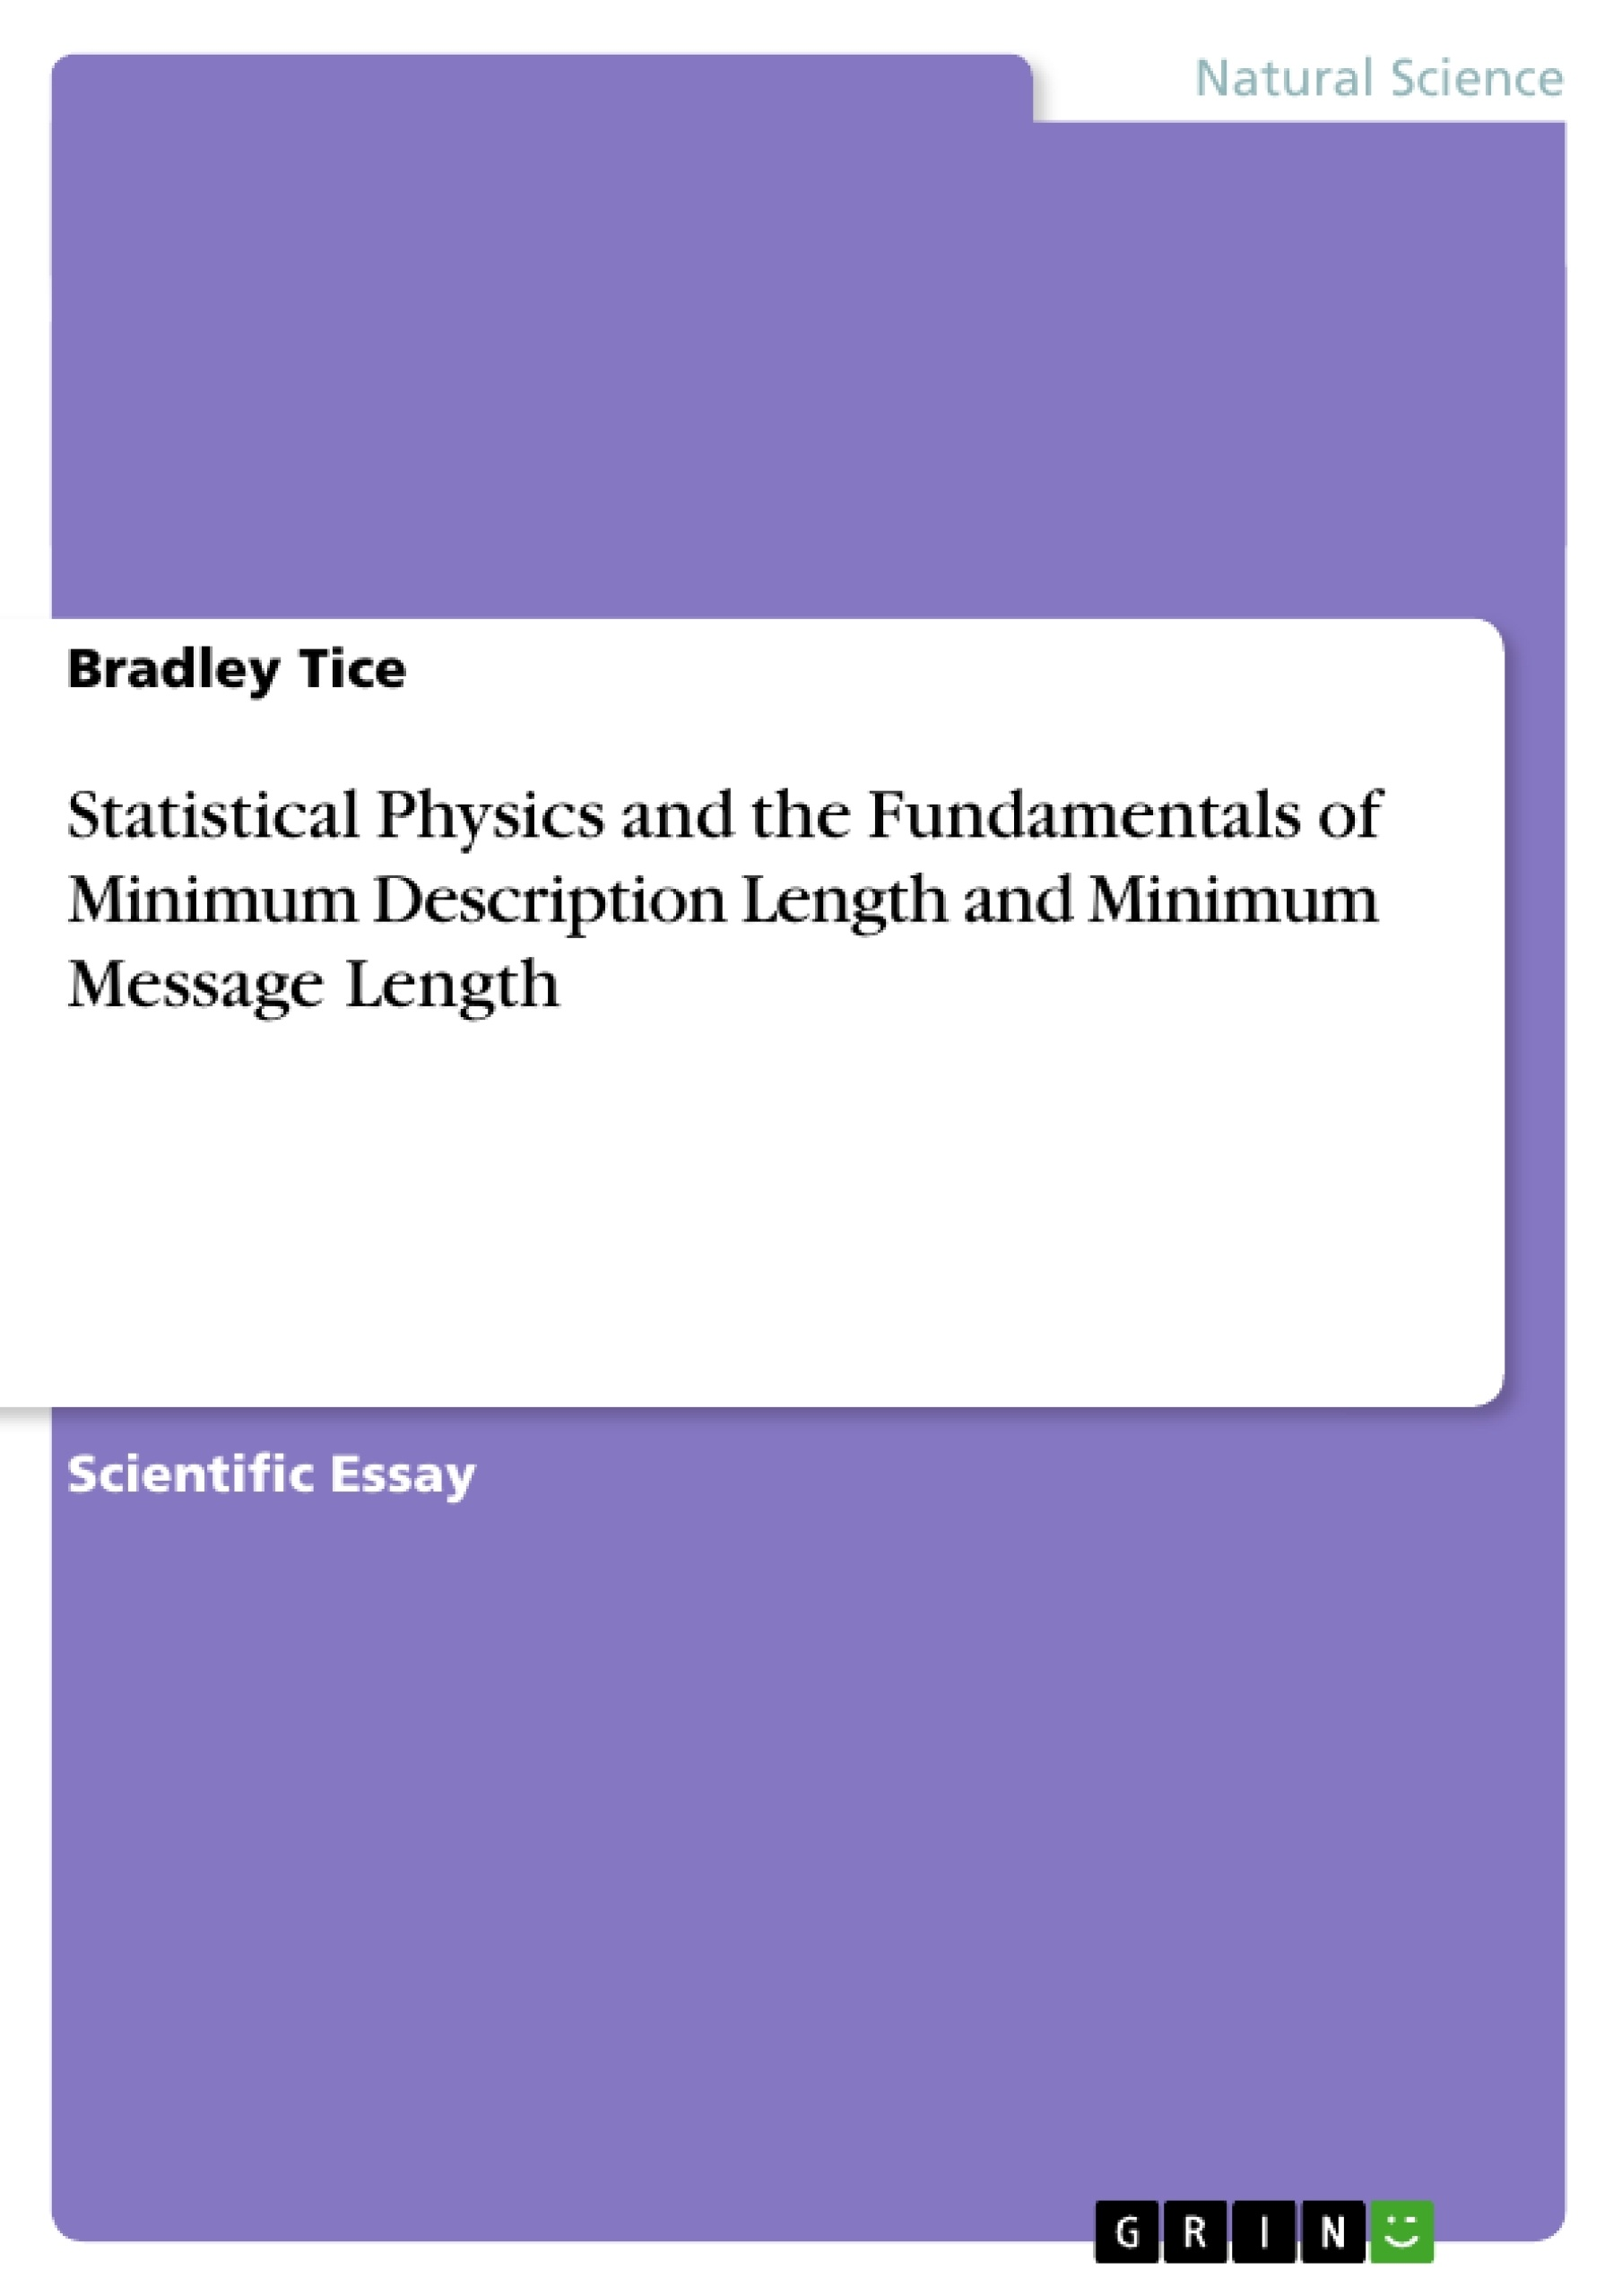 Title: Statistical Physics and the Fundamentals of Minimum Description Length and Minimum Message Length